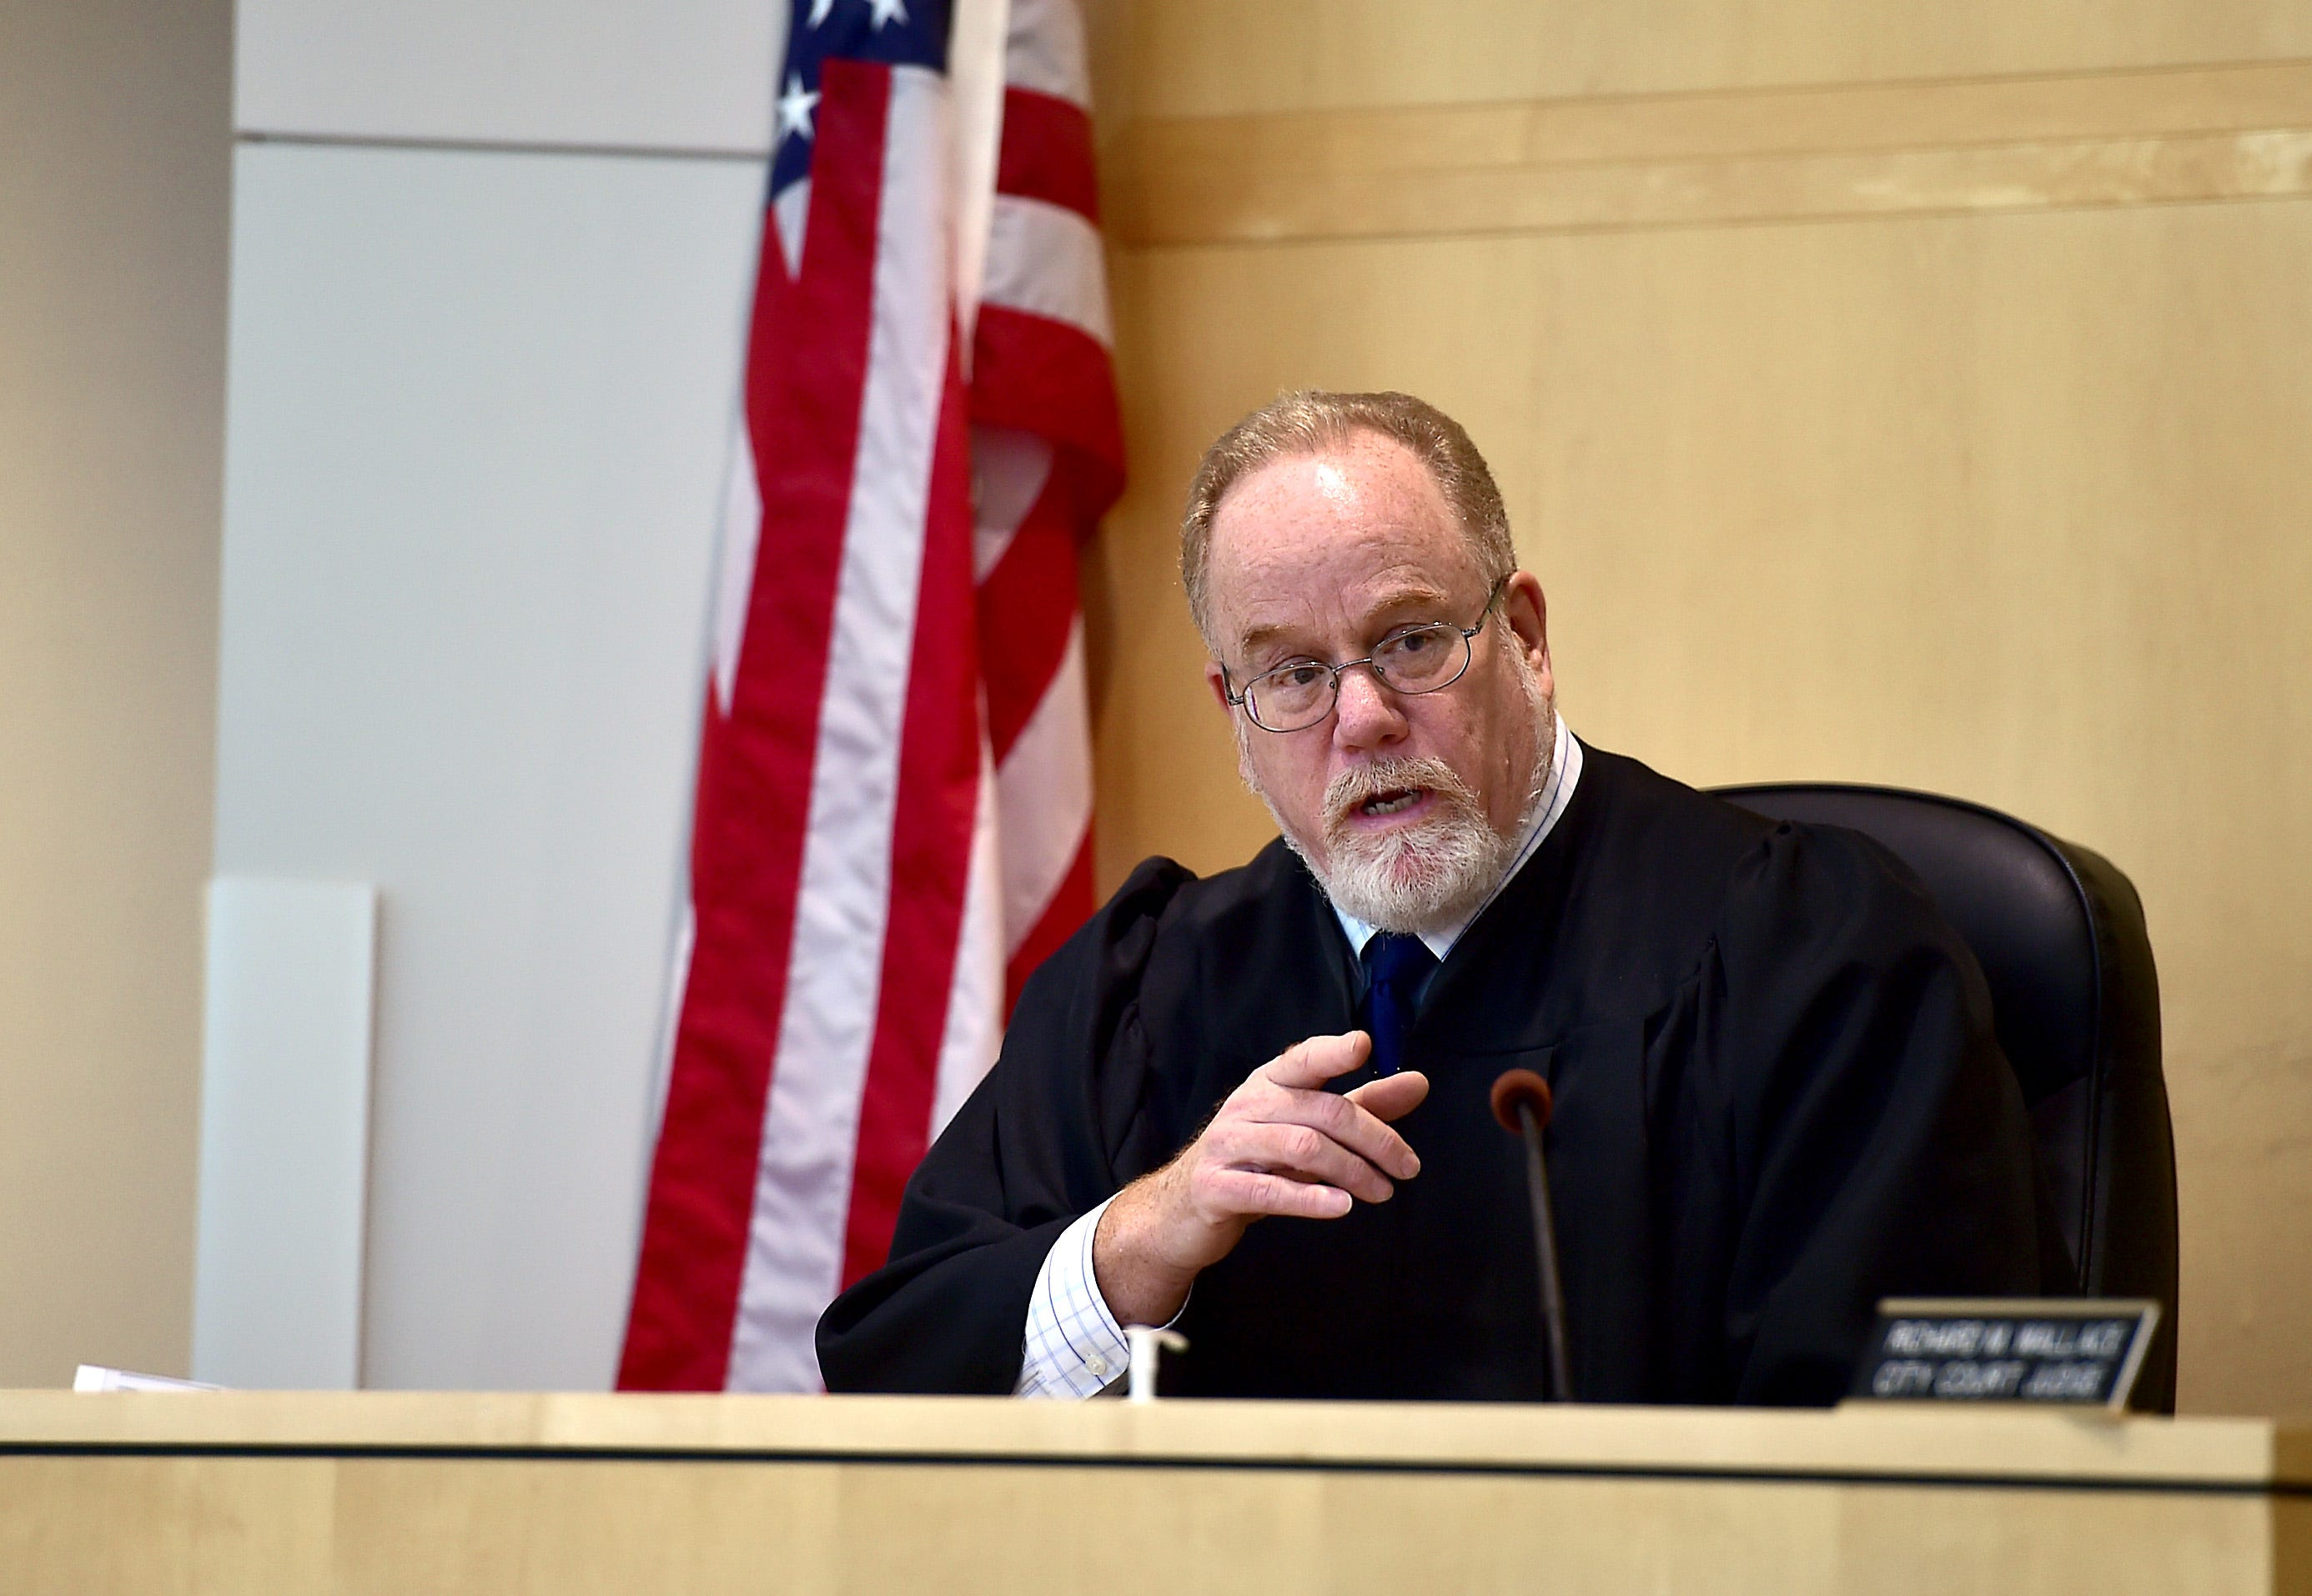 Hon. Richard M. Wallace presides over a small claims civil case in Ithaca City Court on Thursday. Small claims court serves individuals and has a monetary damage limit of $5,000.